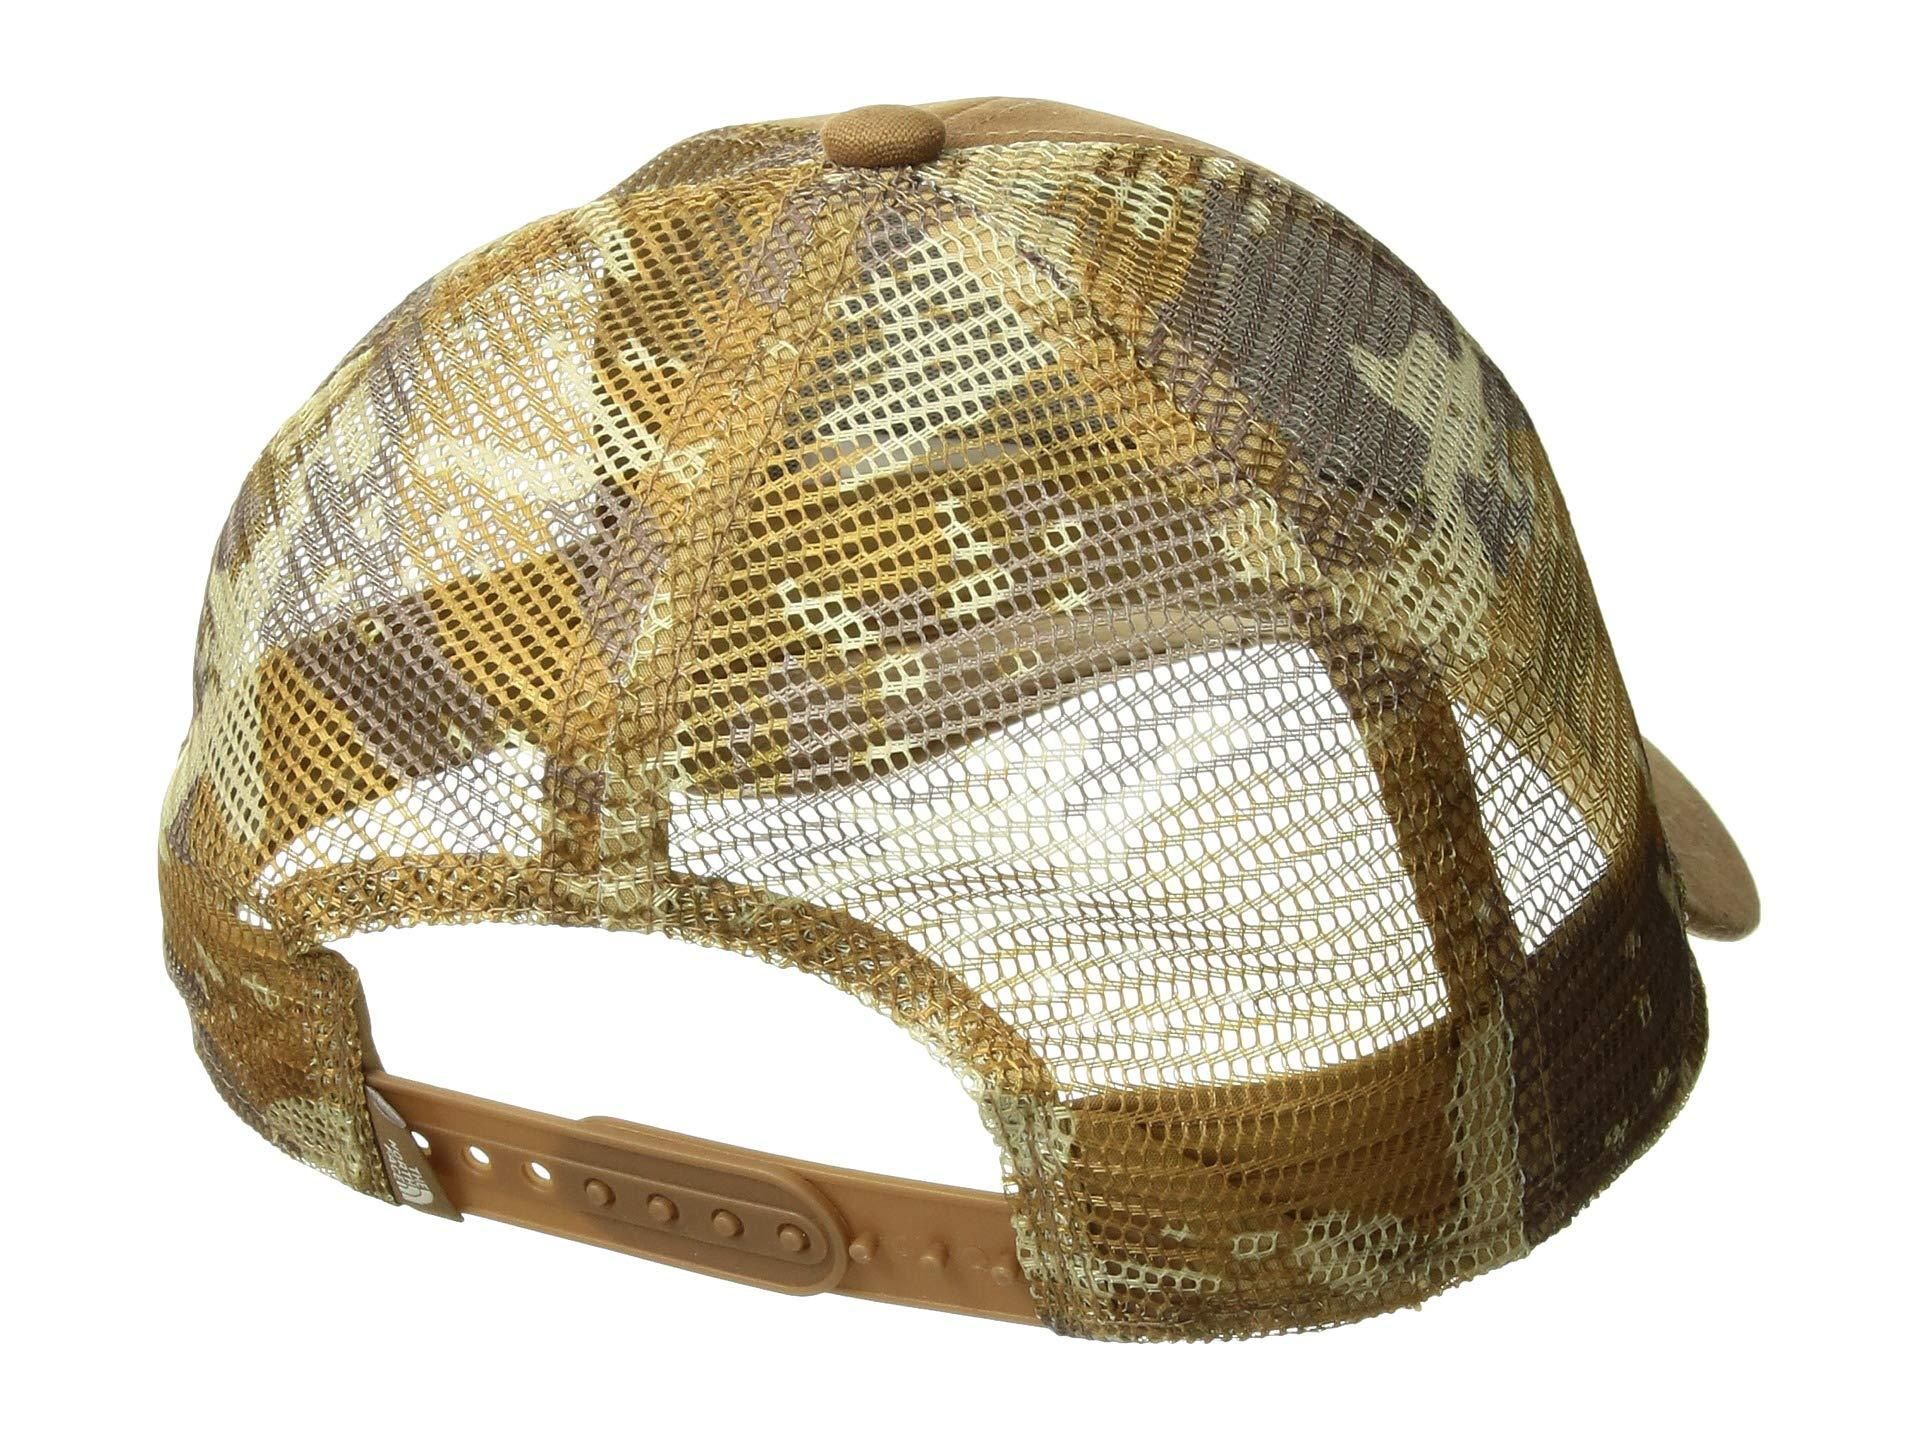 78fab471dfc32 The North Face - Natural Mudder Novelty Mesh Trucker Hat (tnf Black  Psychedelic Print). View fullscreen